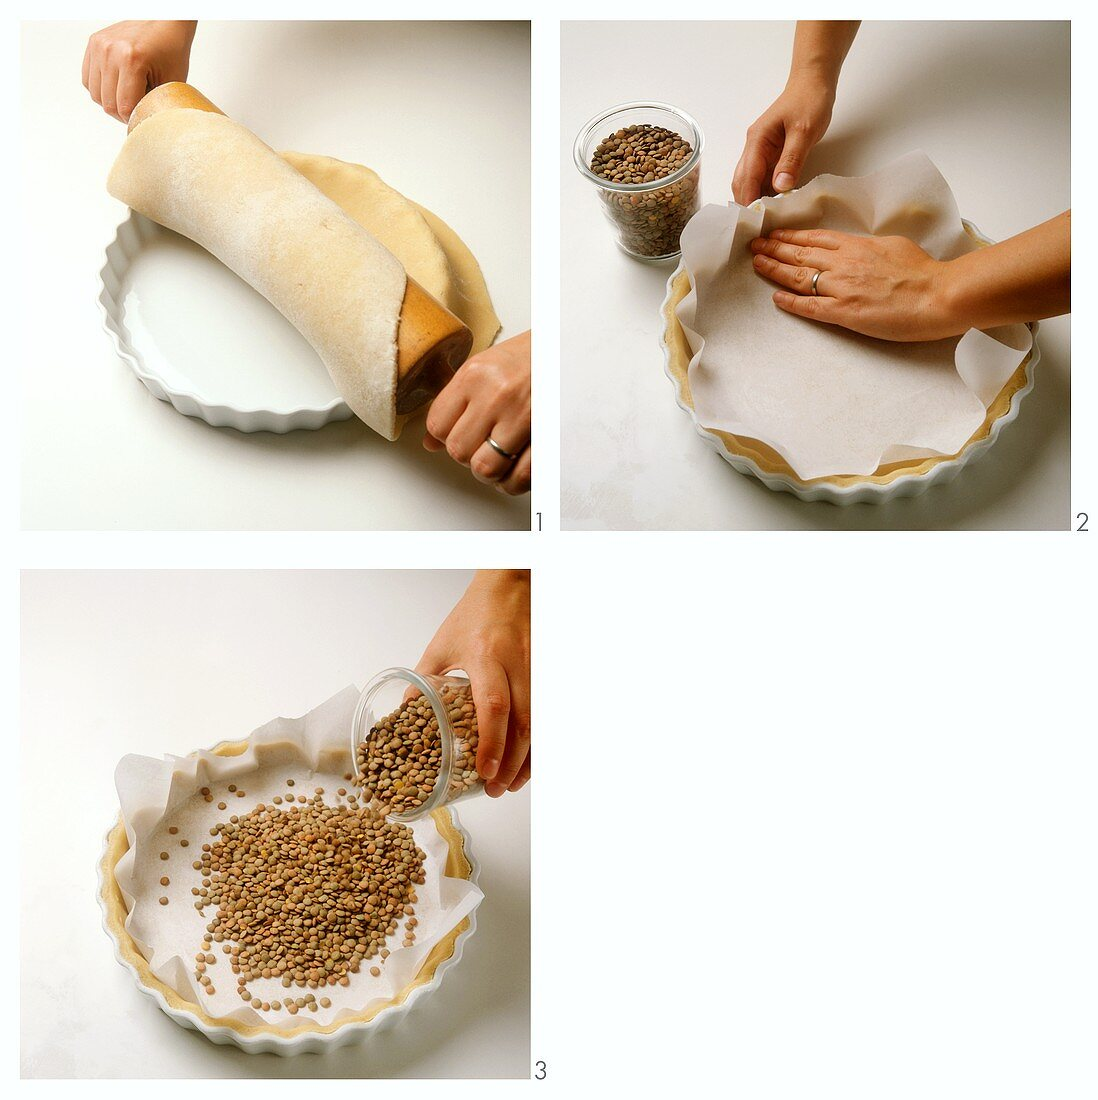 Baking a pastry base blind